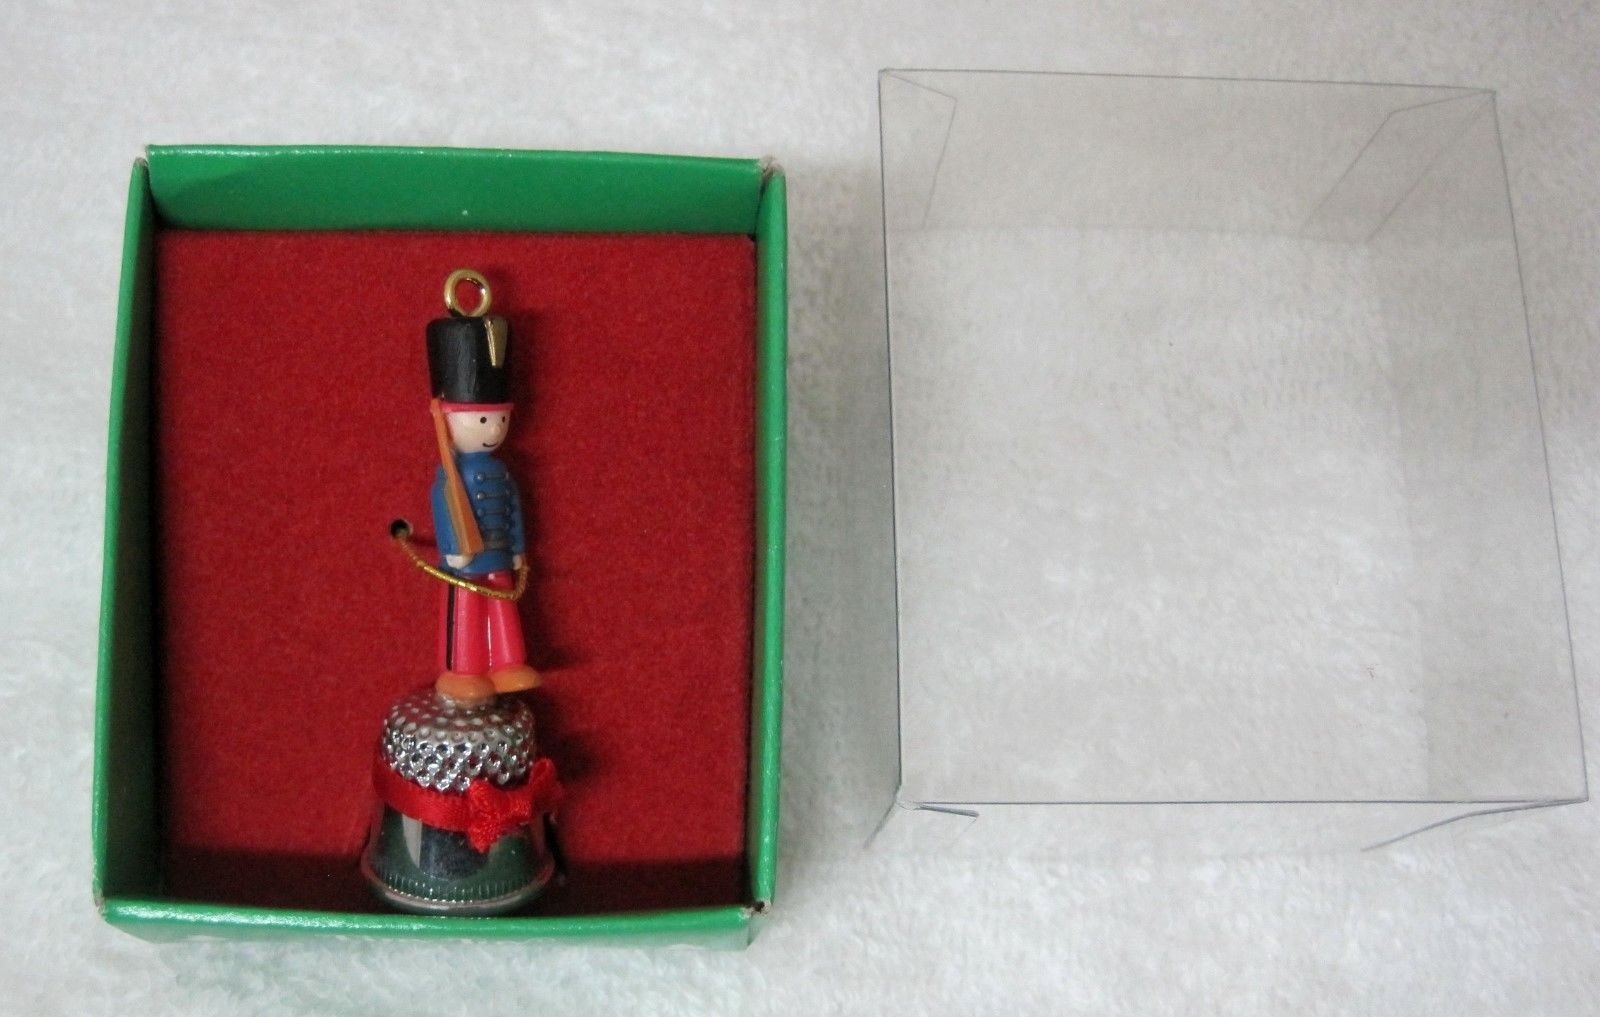 Tiny Toy Thimble Christmas Ornament Enesco 552682 1986 Toy Soldiers Orig Box  - $18.32